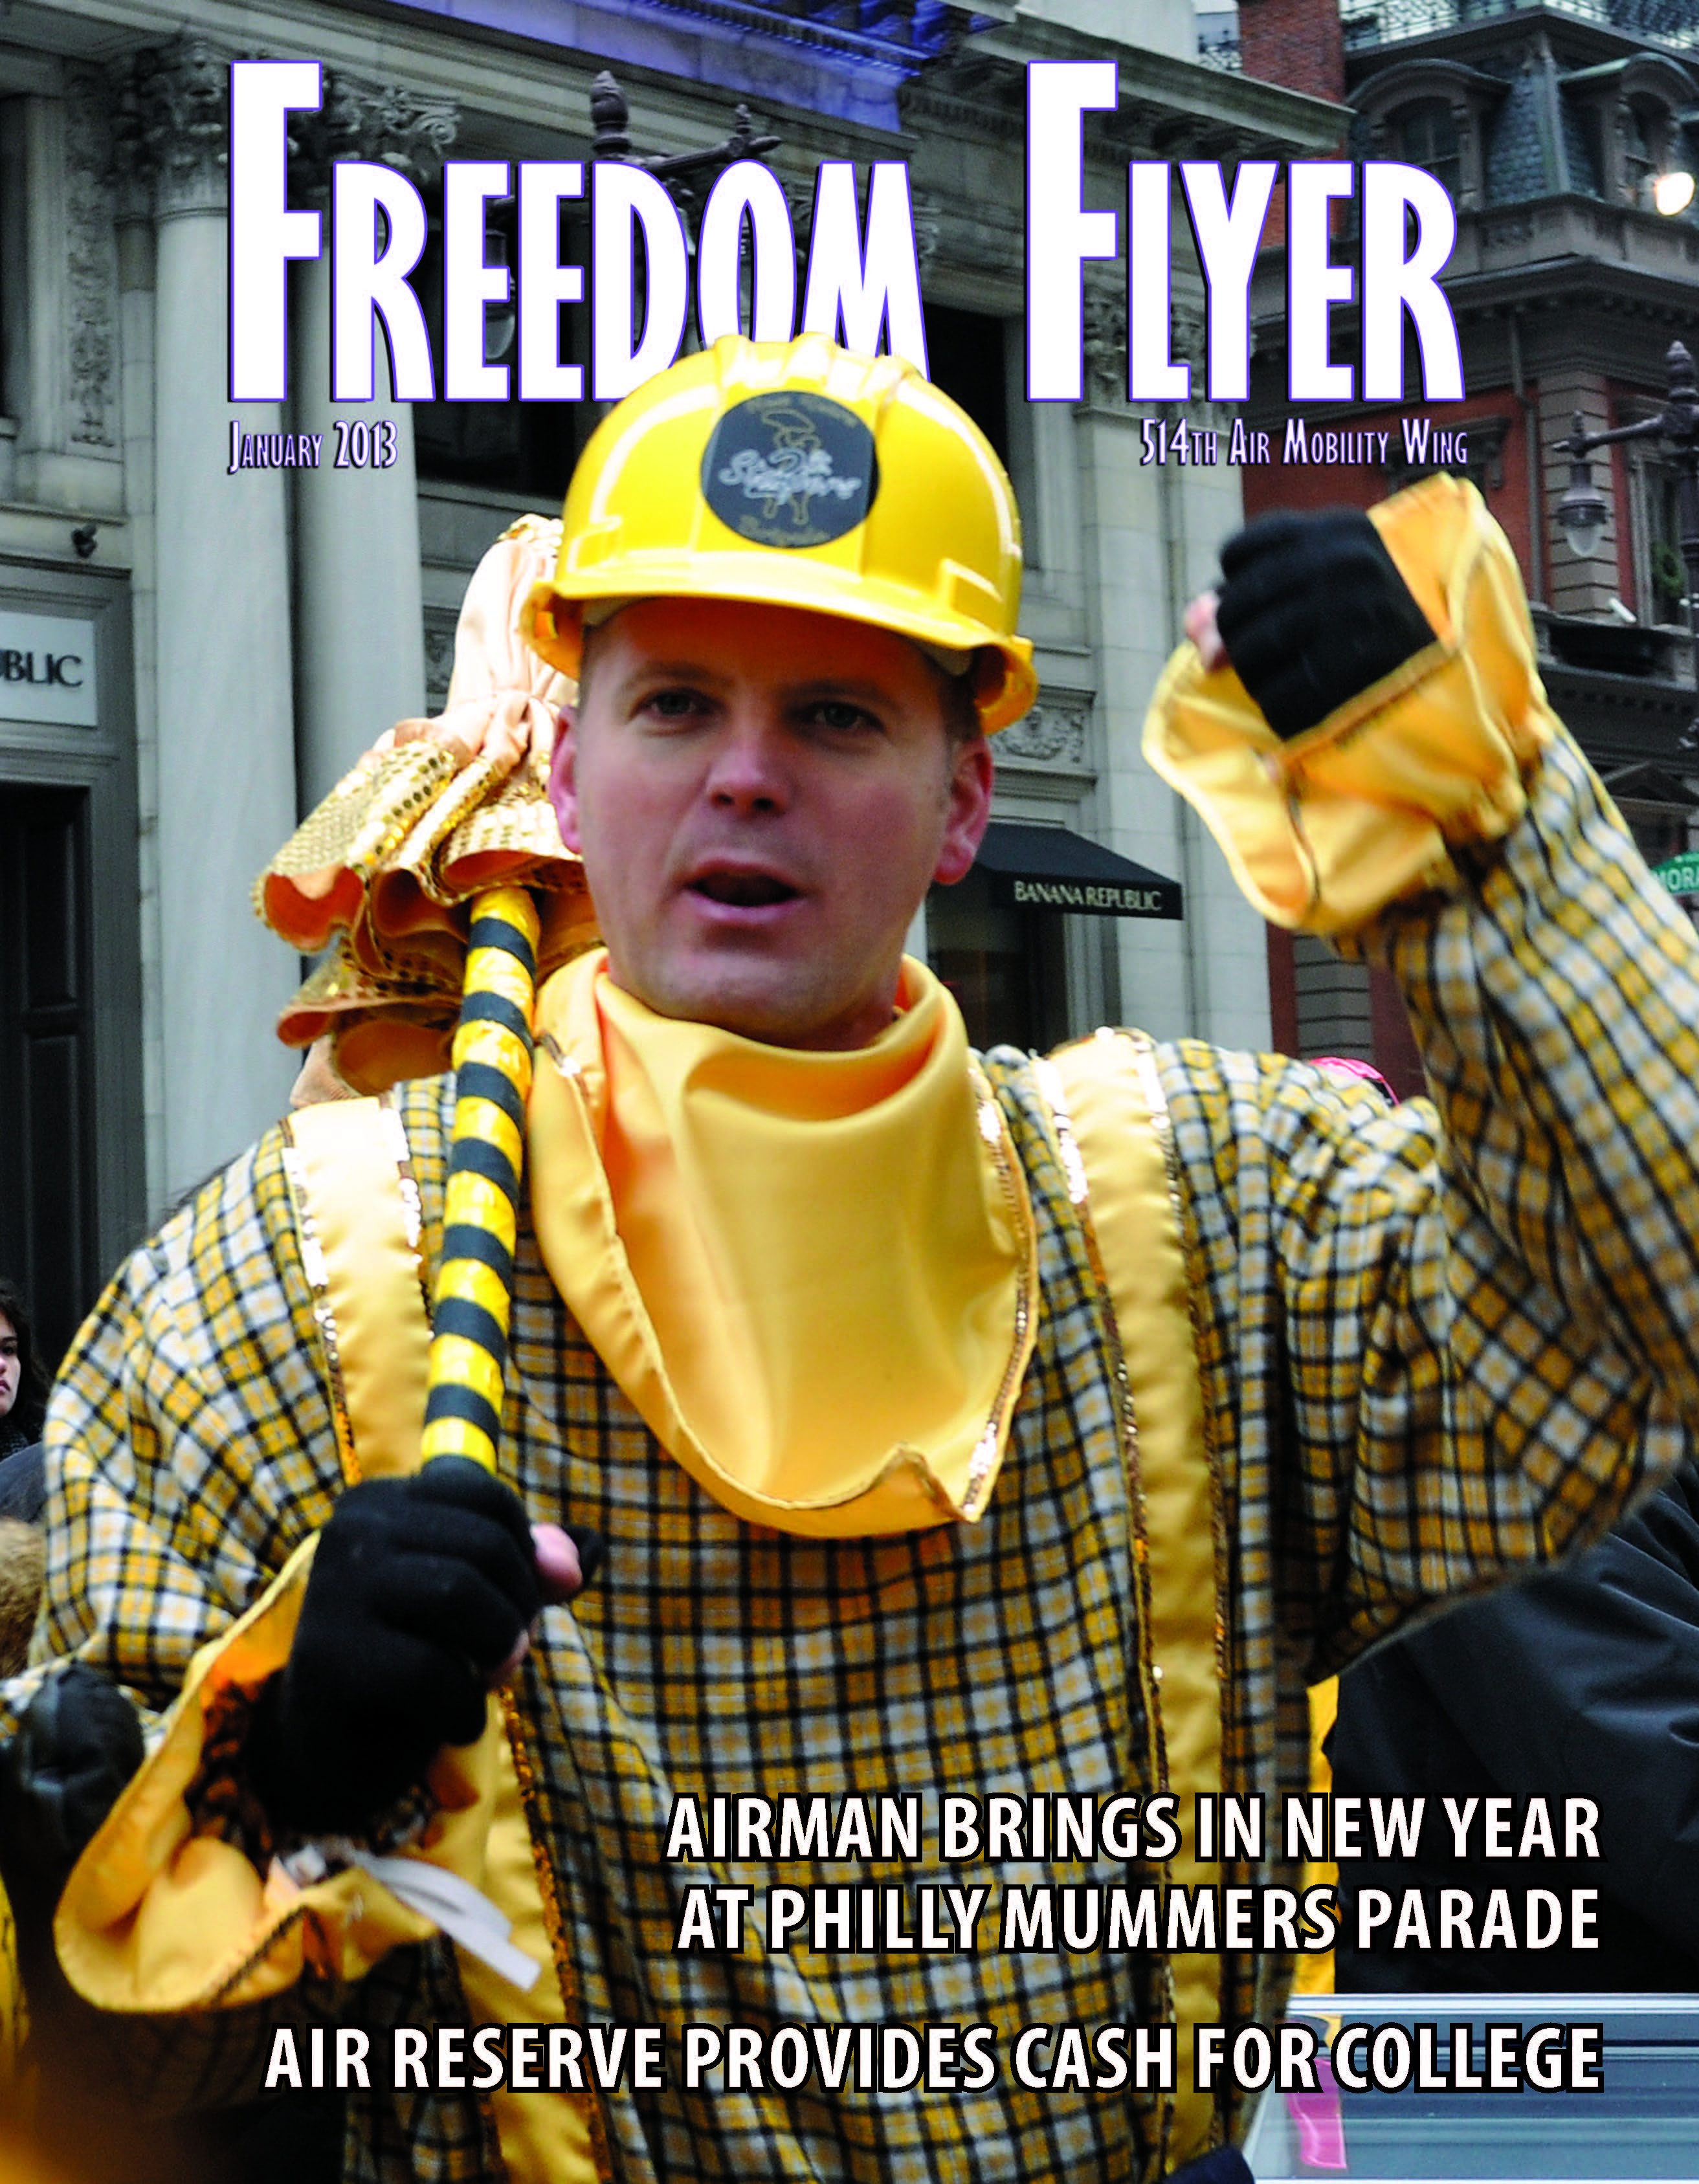 Freedom Flyer - January 2013